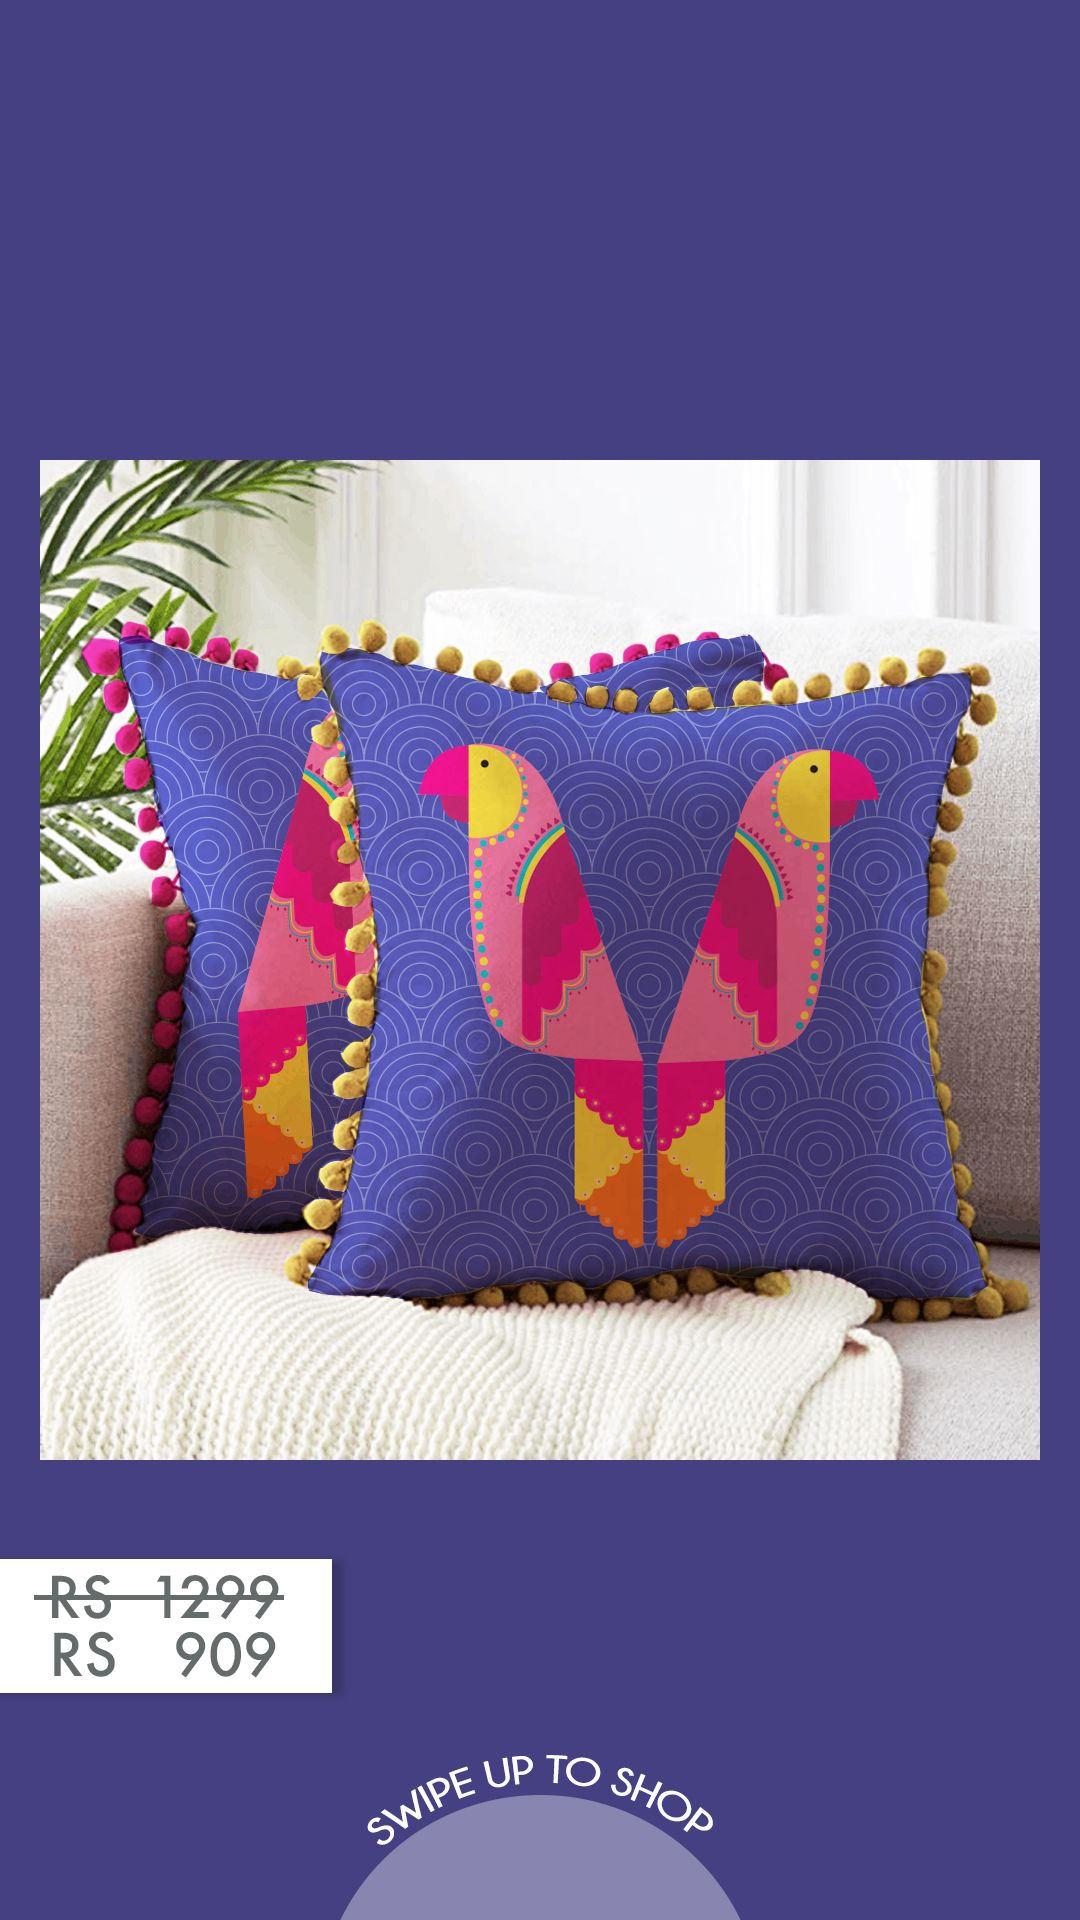 Cushioncovers Are The Best Way To Add Colour And Happy Feels To Your Home Not Only Are They Brig Cushion Cover Designs Cushion Cover Bright Decor